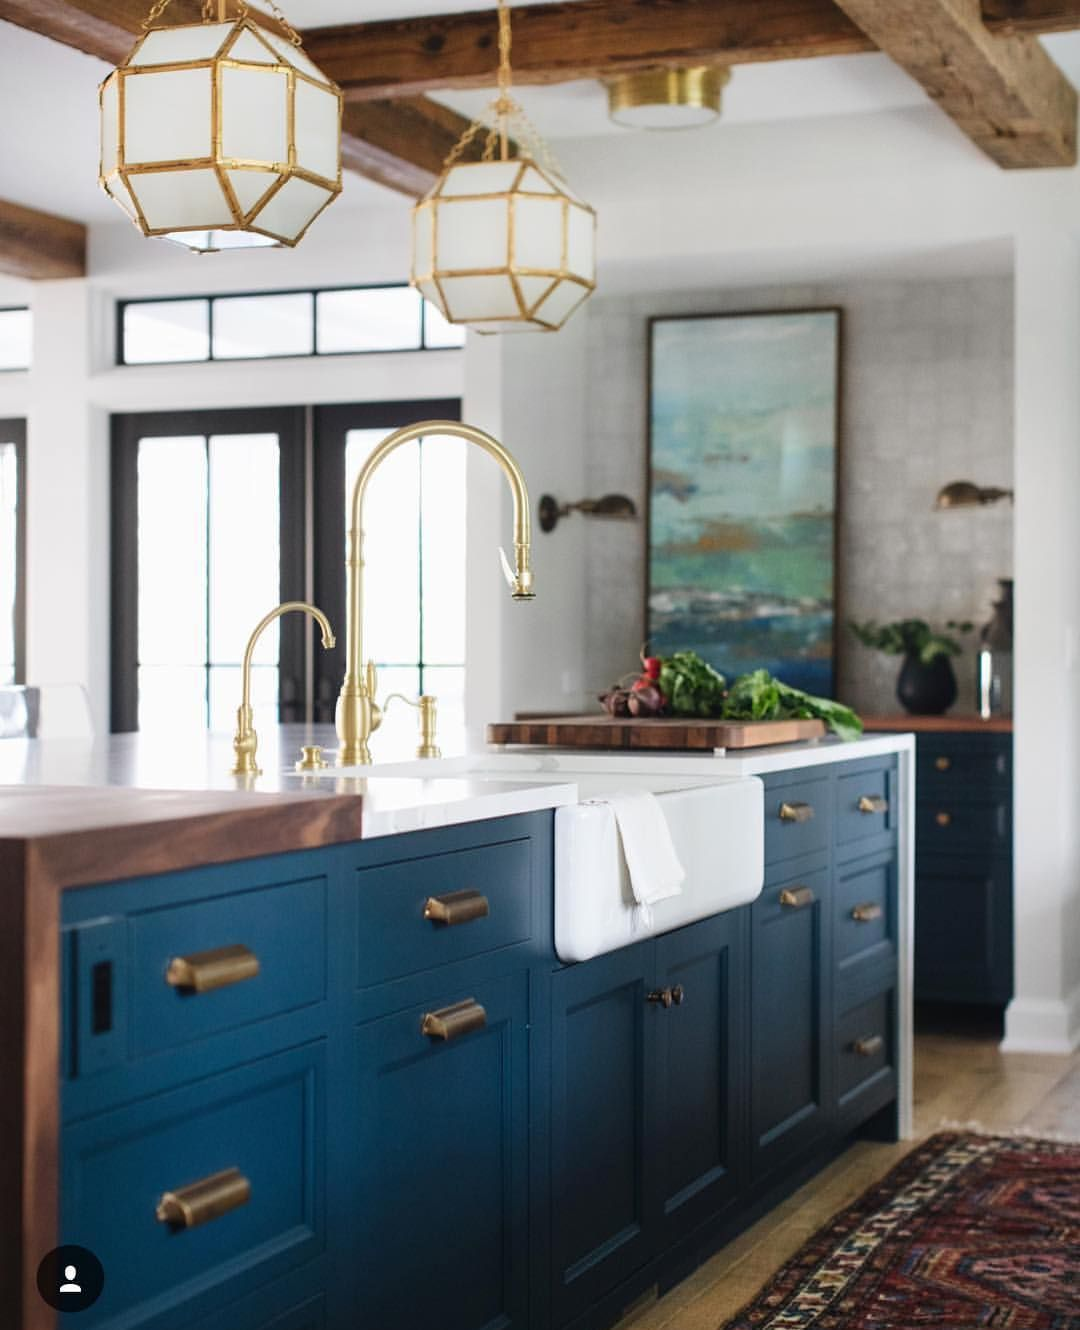 Pin By Krista Smith On Kitchens